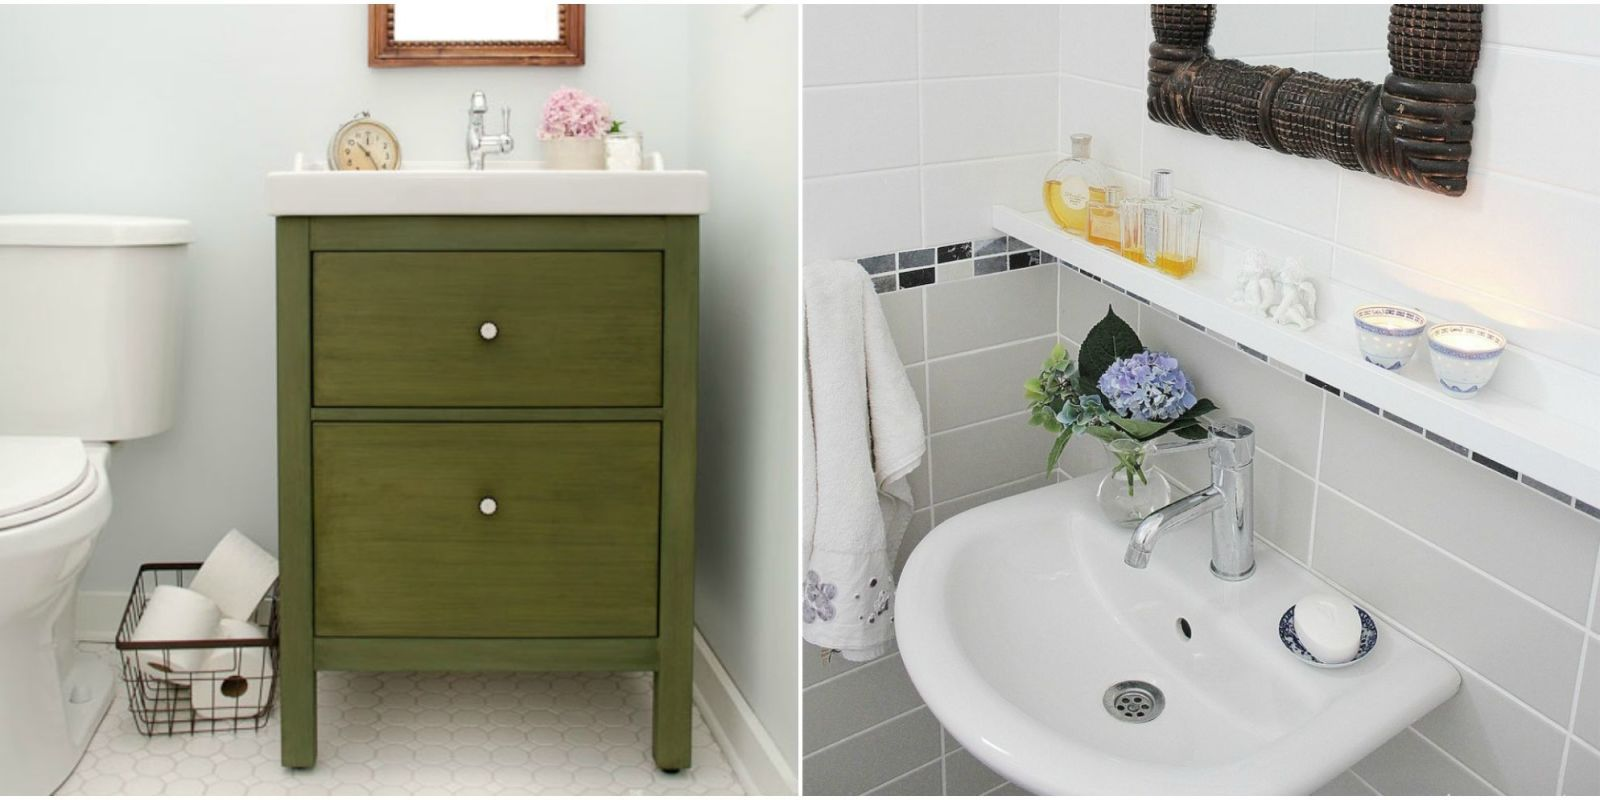 11 IKEA Bathroom Hacks New Uses For IKEA Items In The